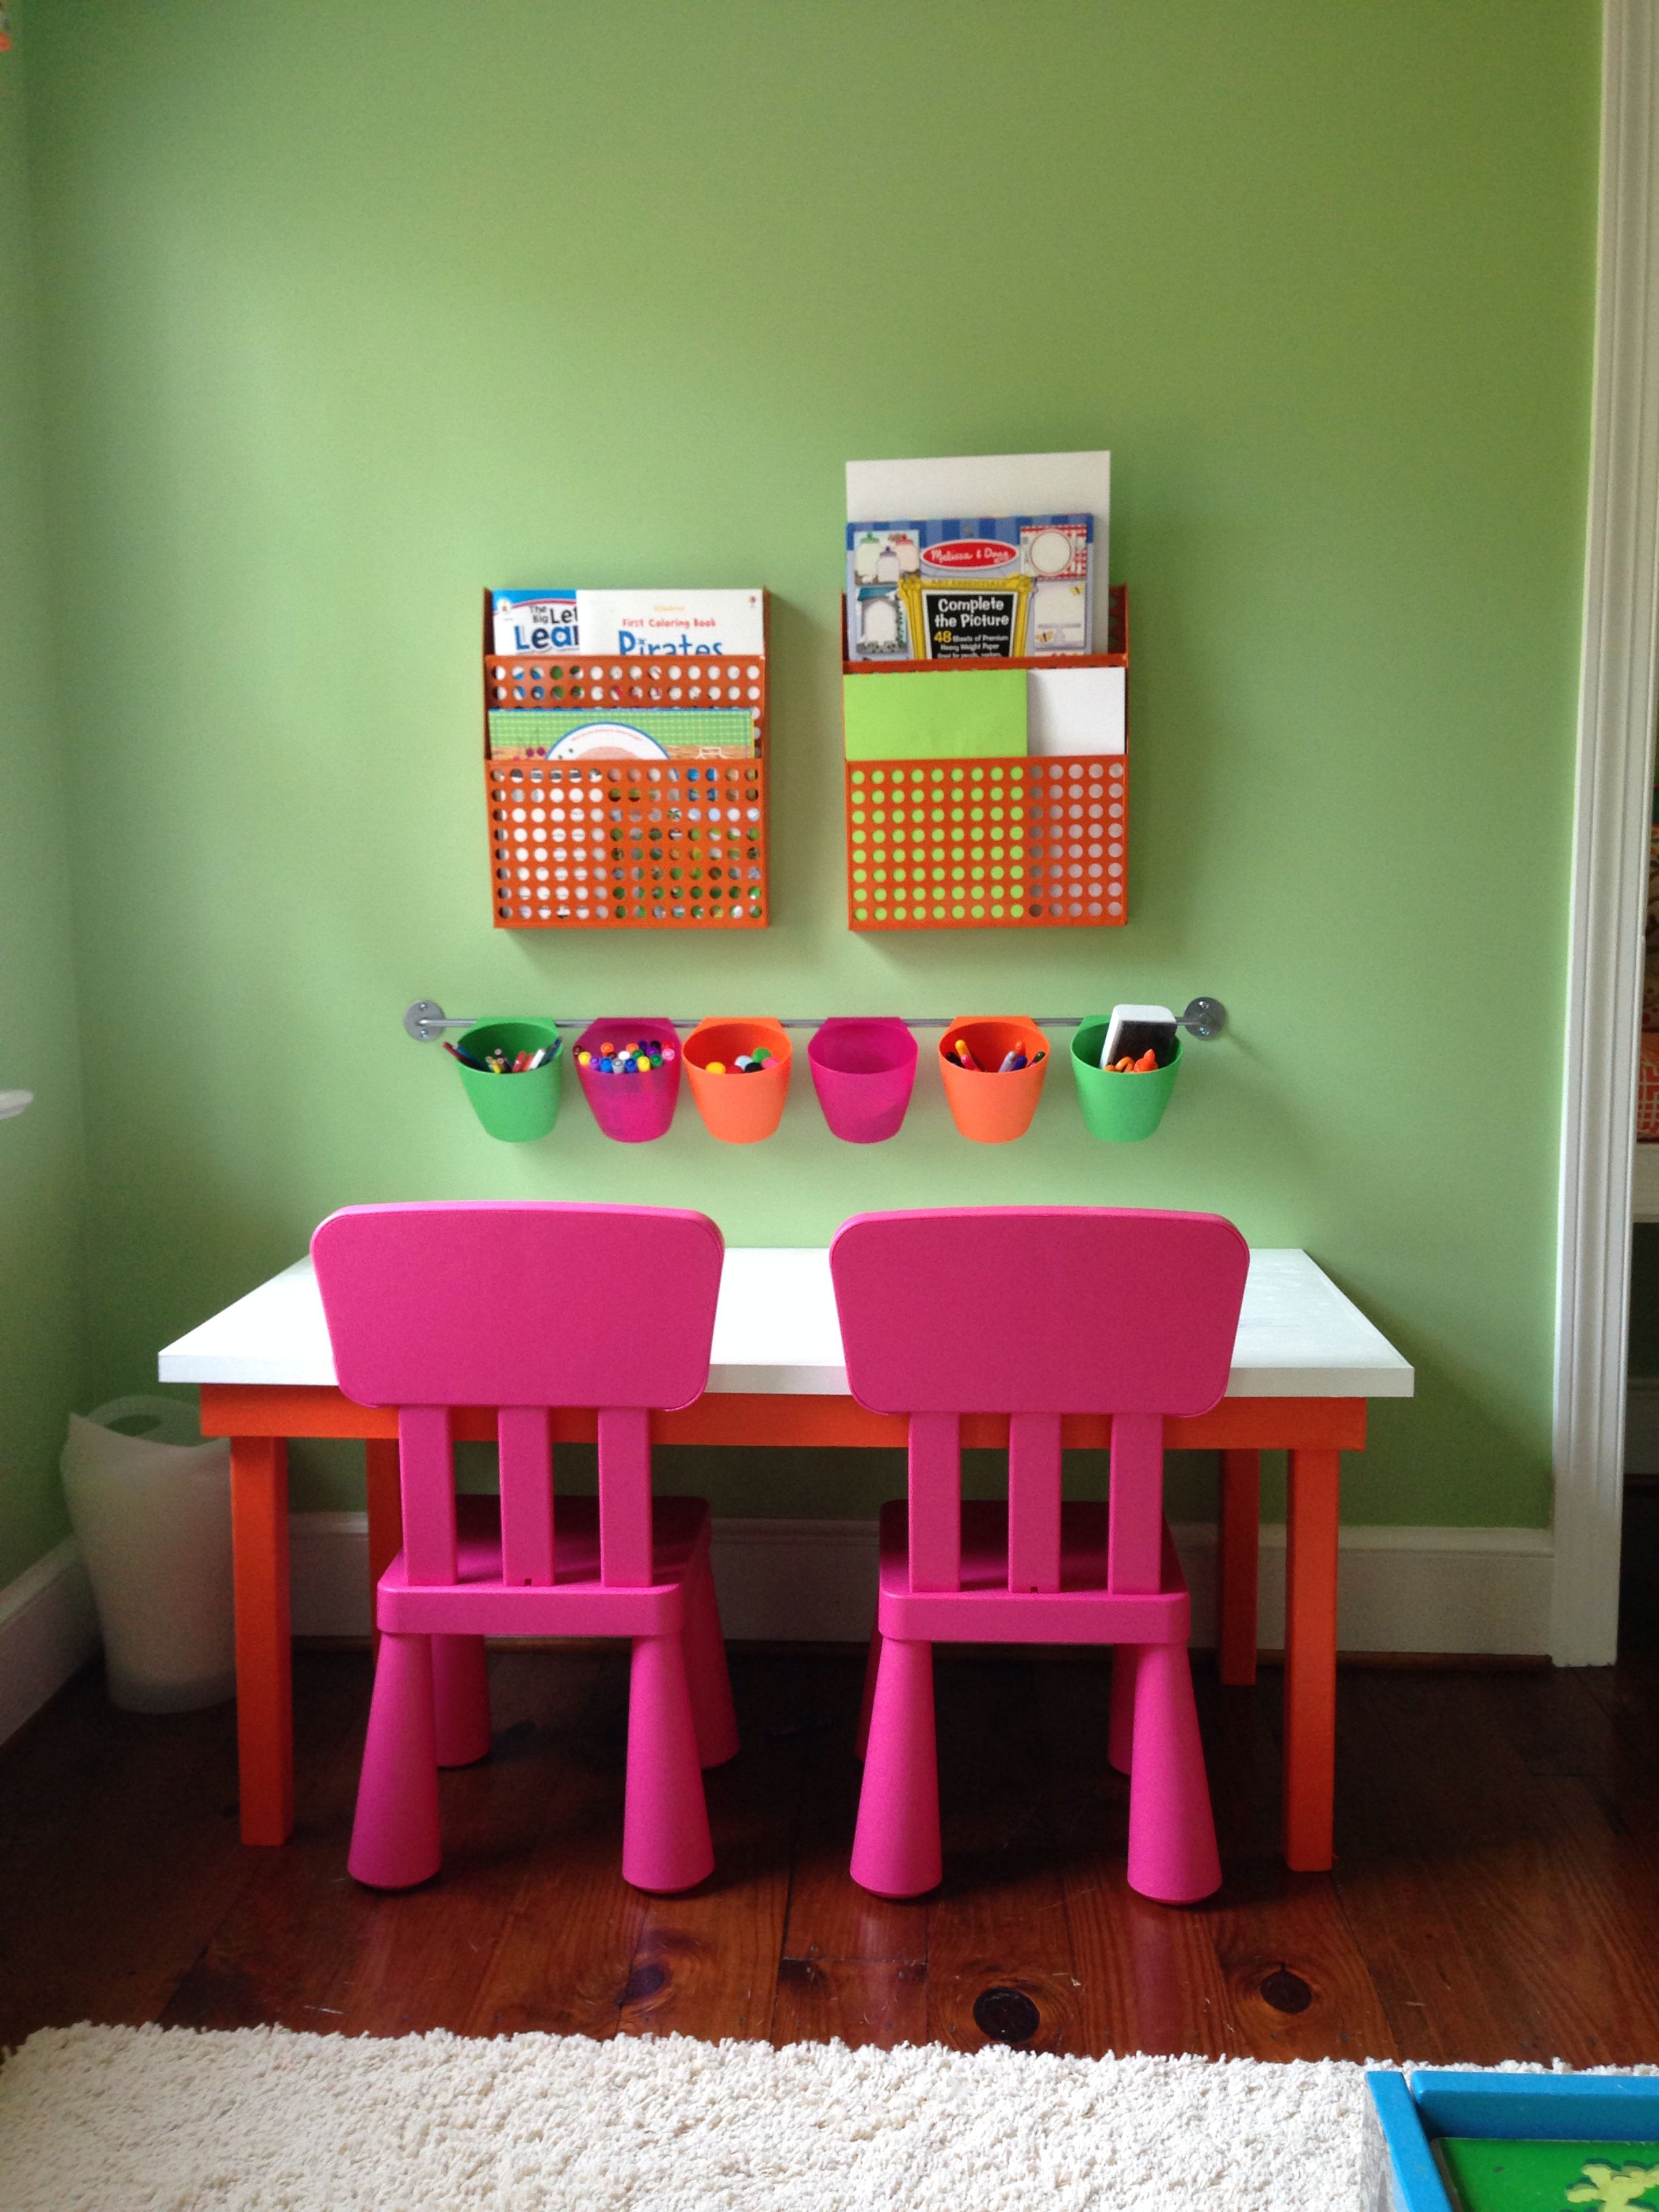 Wall Racks From The Container Store, Chairs And Bygel Wall Hanger From Ikea